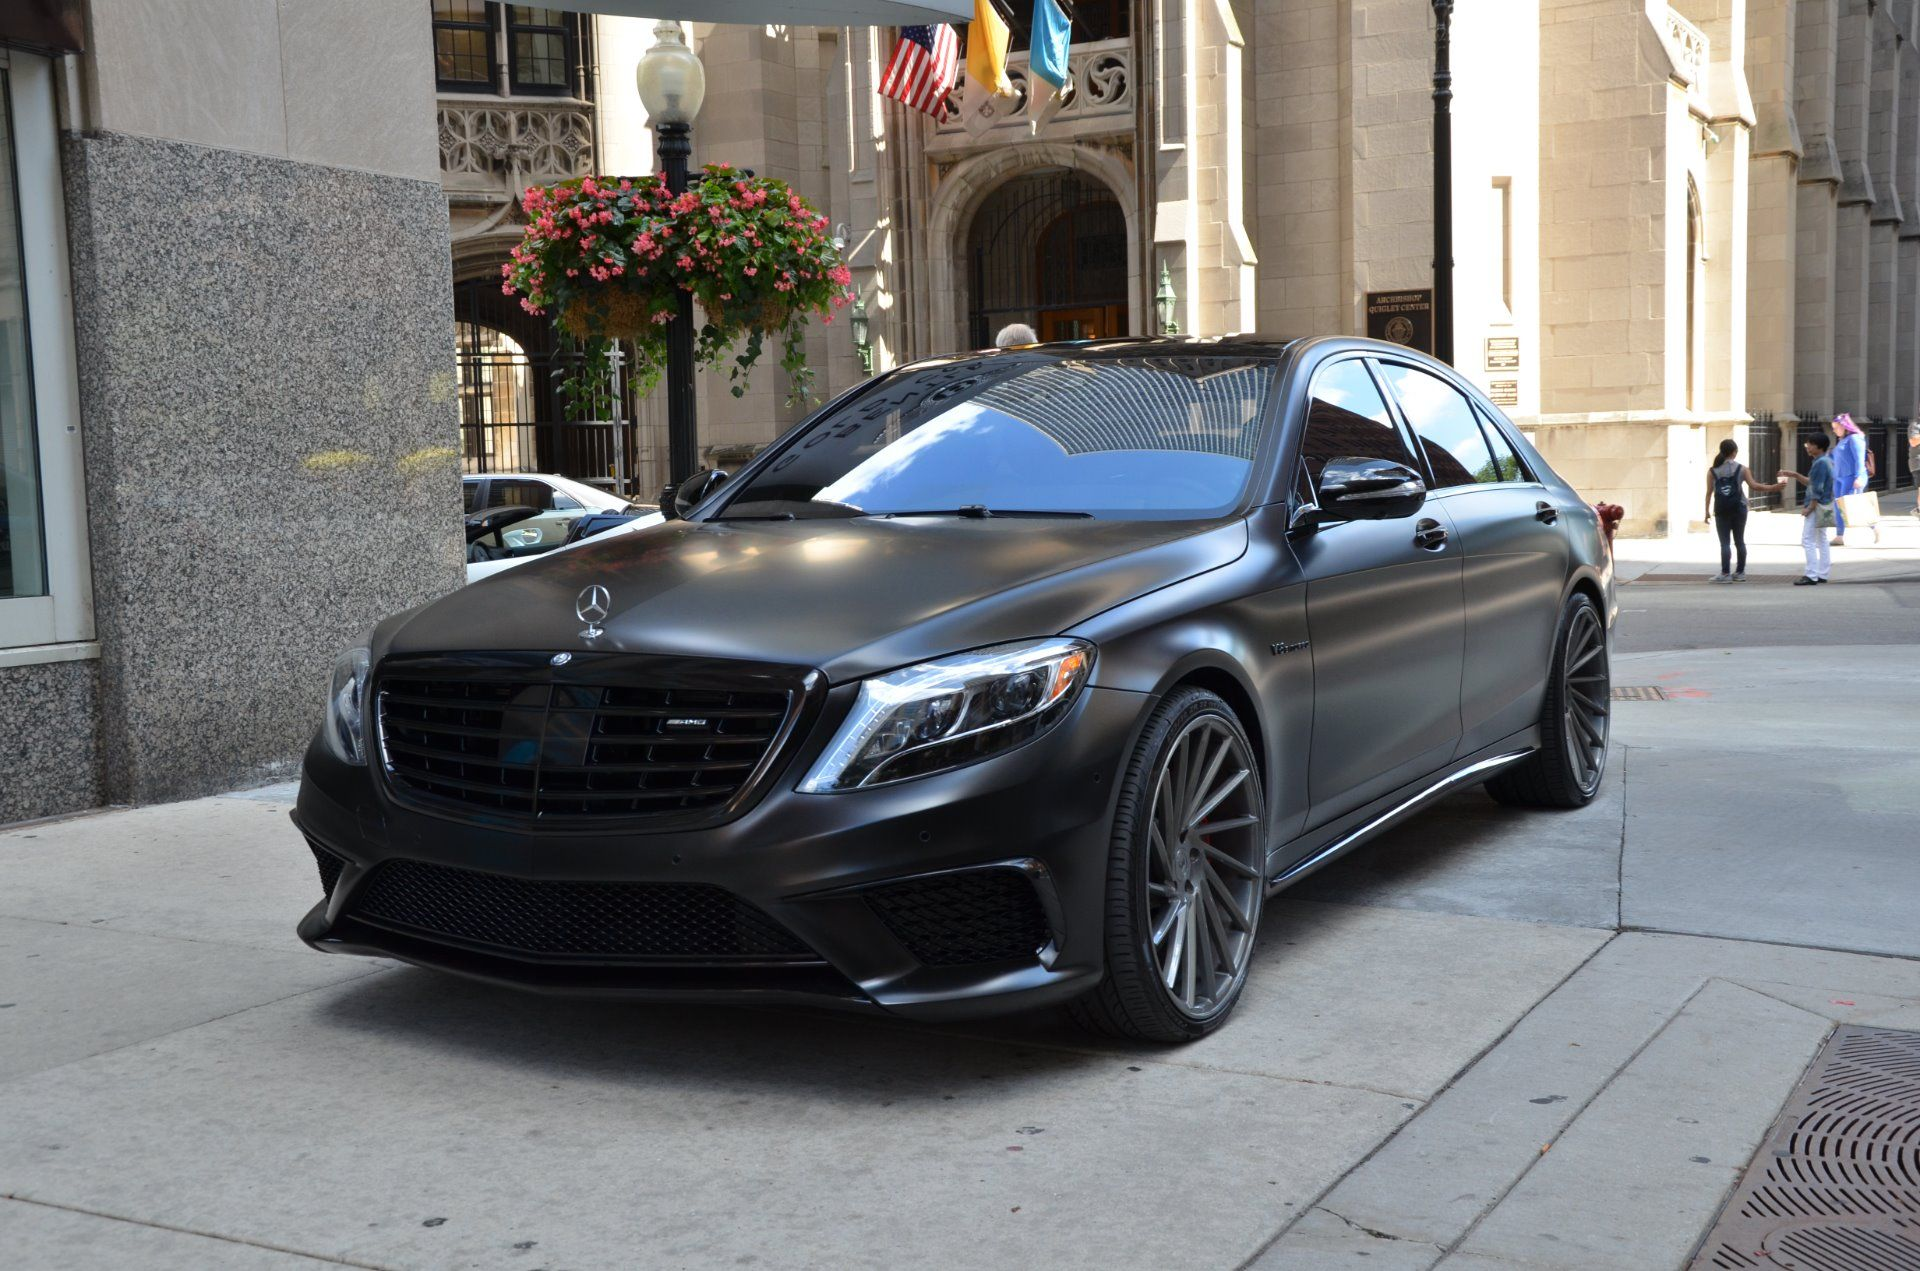 2016 mercedes benz s class cars pinterest mercedes for Gold coast bentley luxury motors